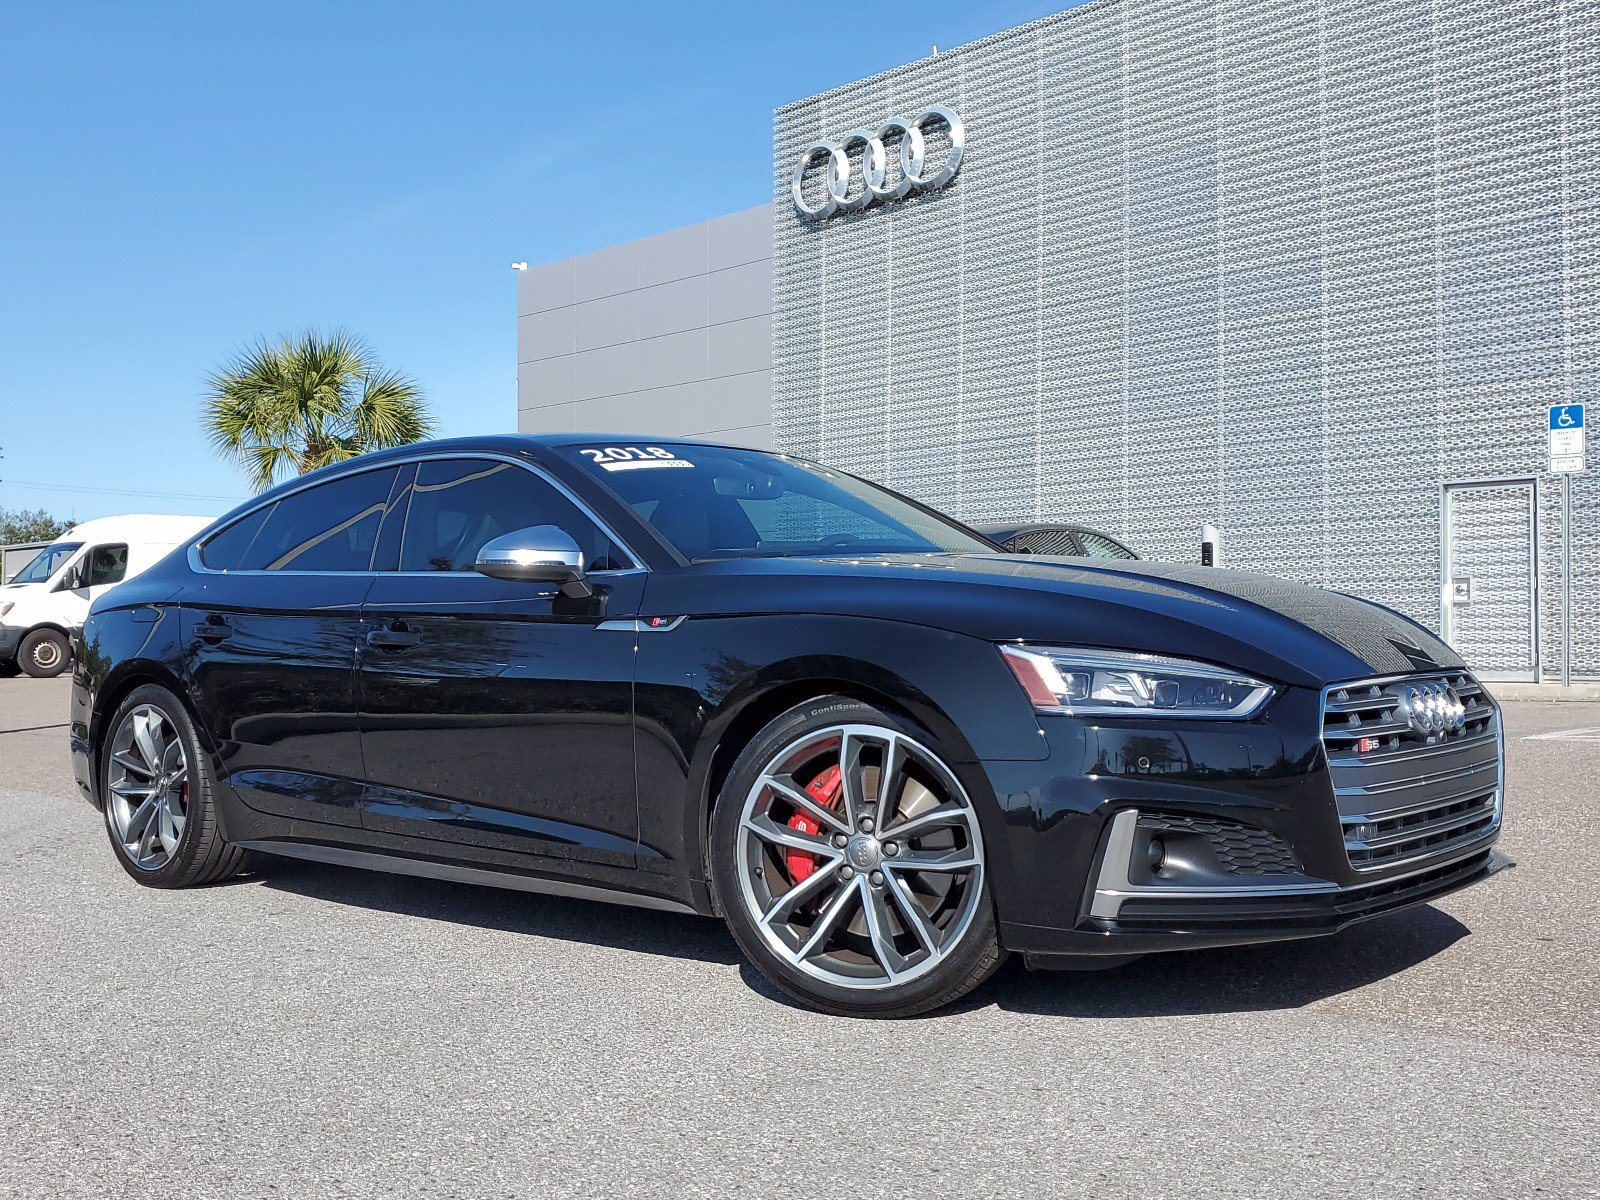 Used 2018 Audi S5 Sportback For Sale At Audi Clearwater Vin Wauc4cf52ja059176